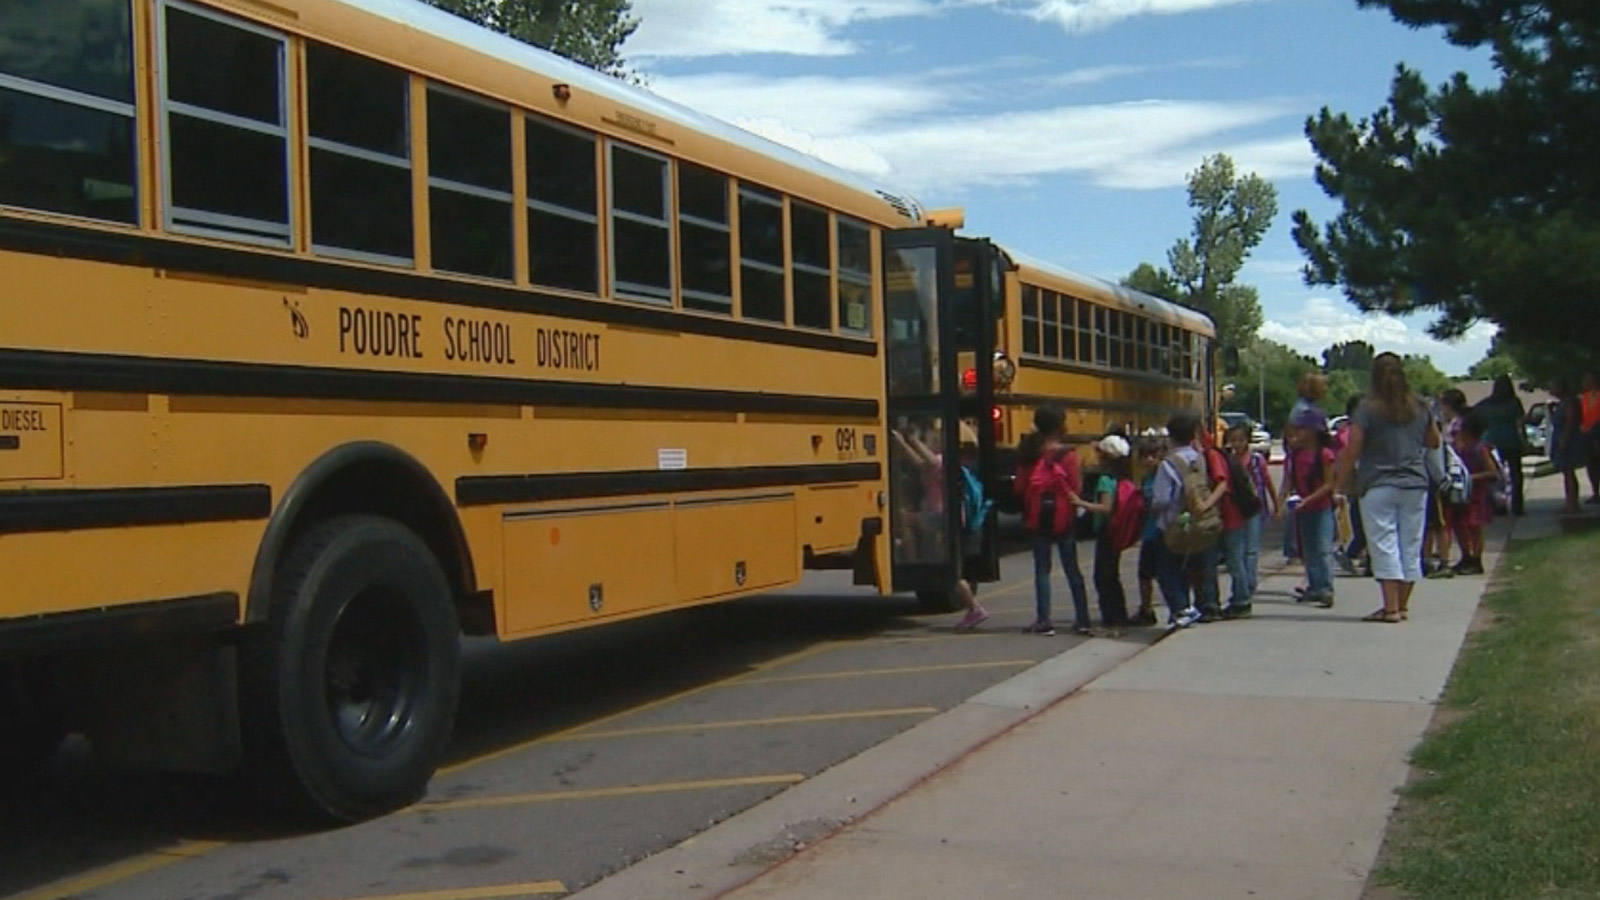 Students get on buses after being released early for hot weather (credit: CBS)